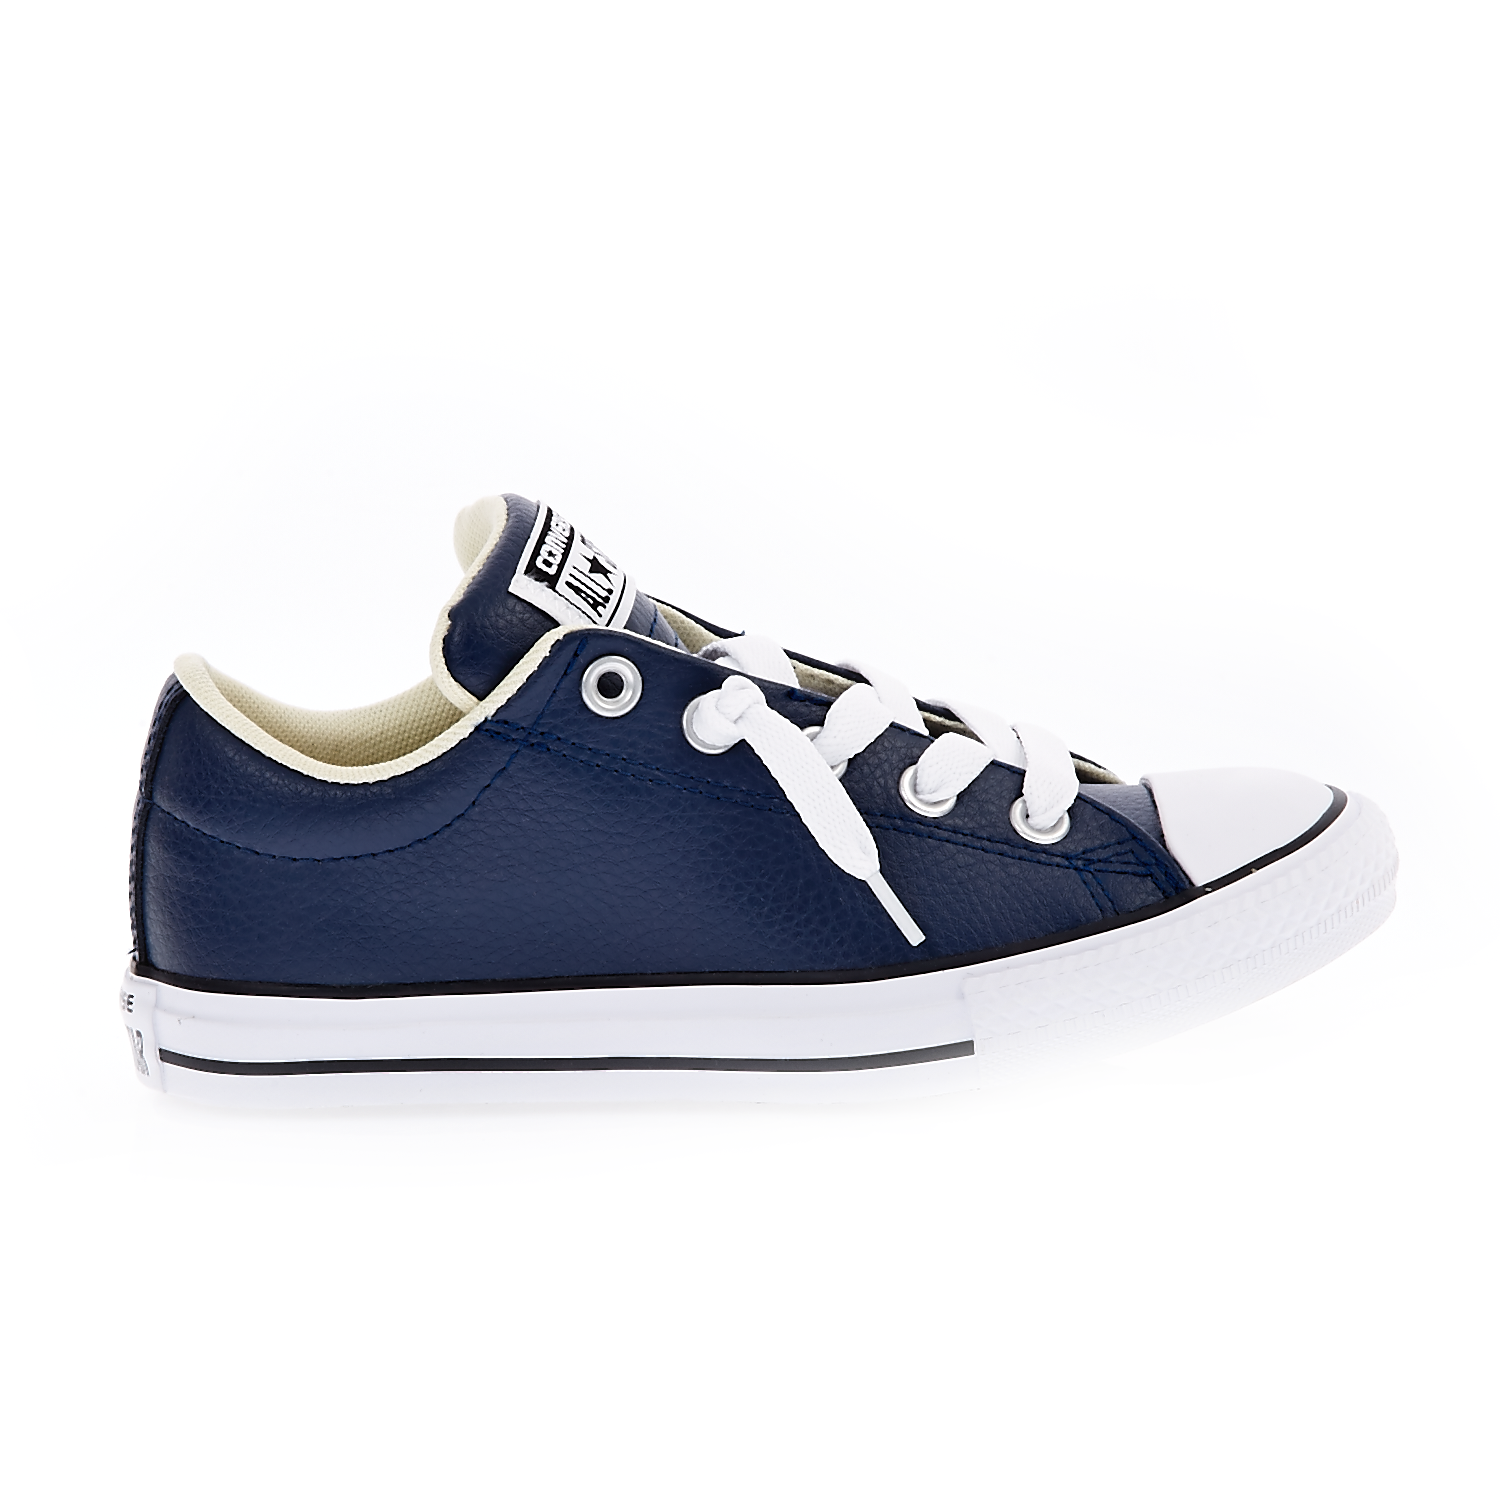 CONVERSE - Παιδικά παπούτσια Chuck Taylor All Star Street S μπλε